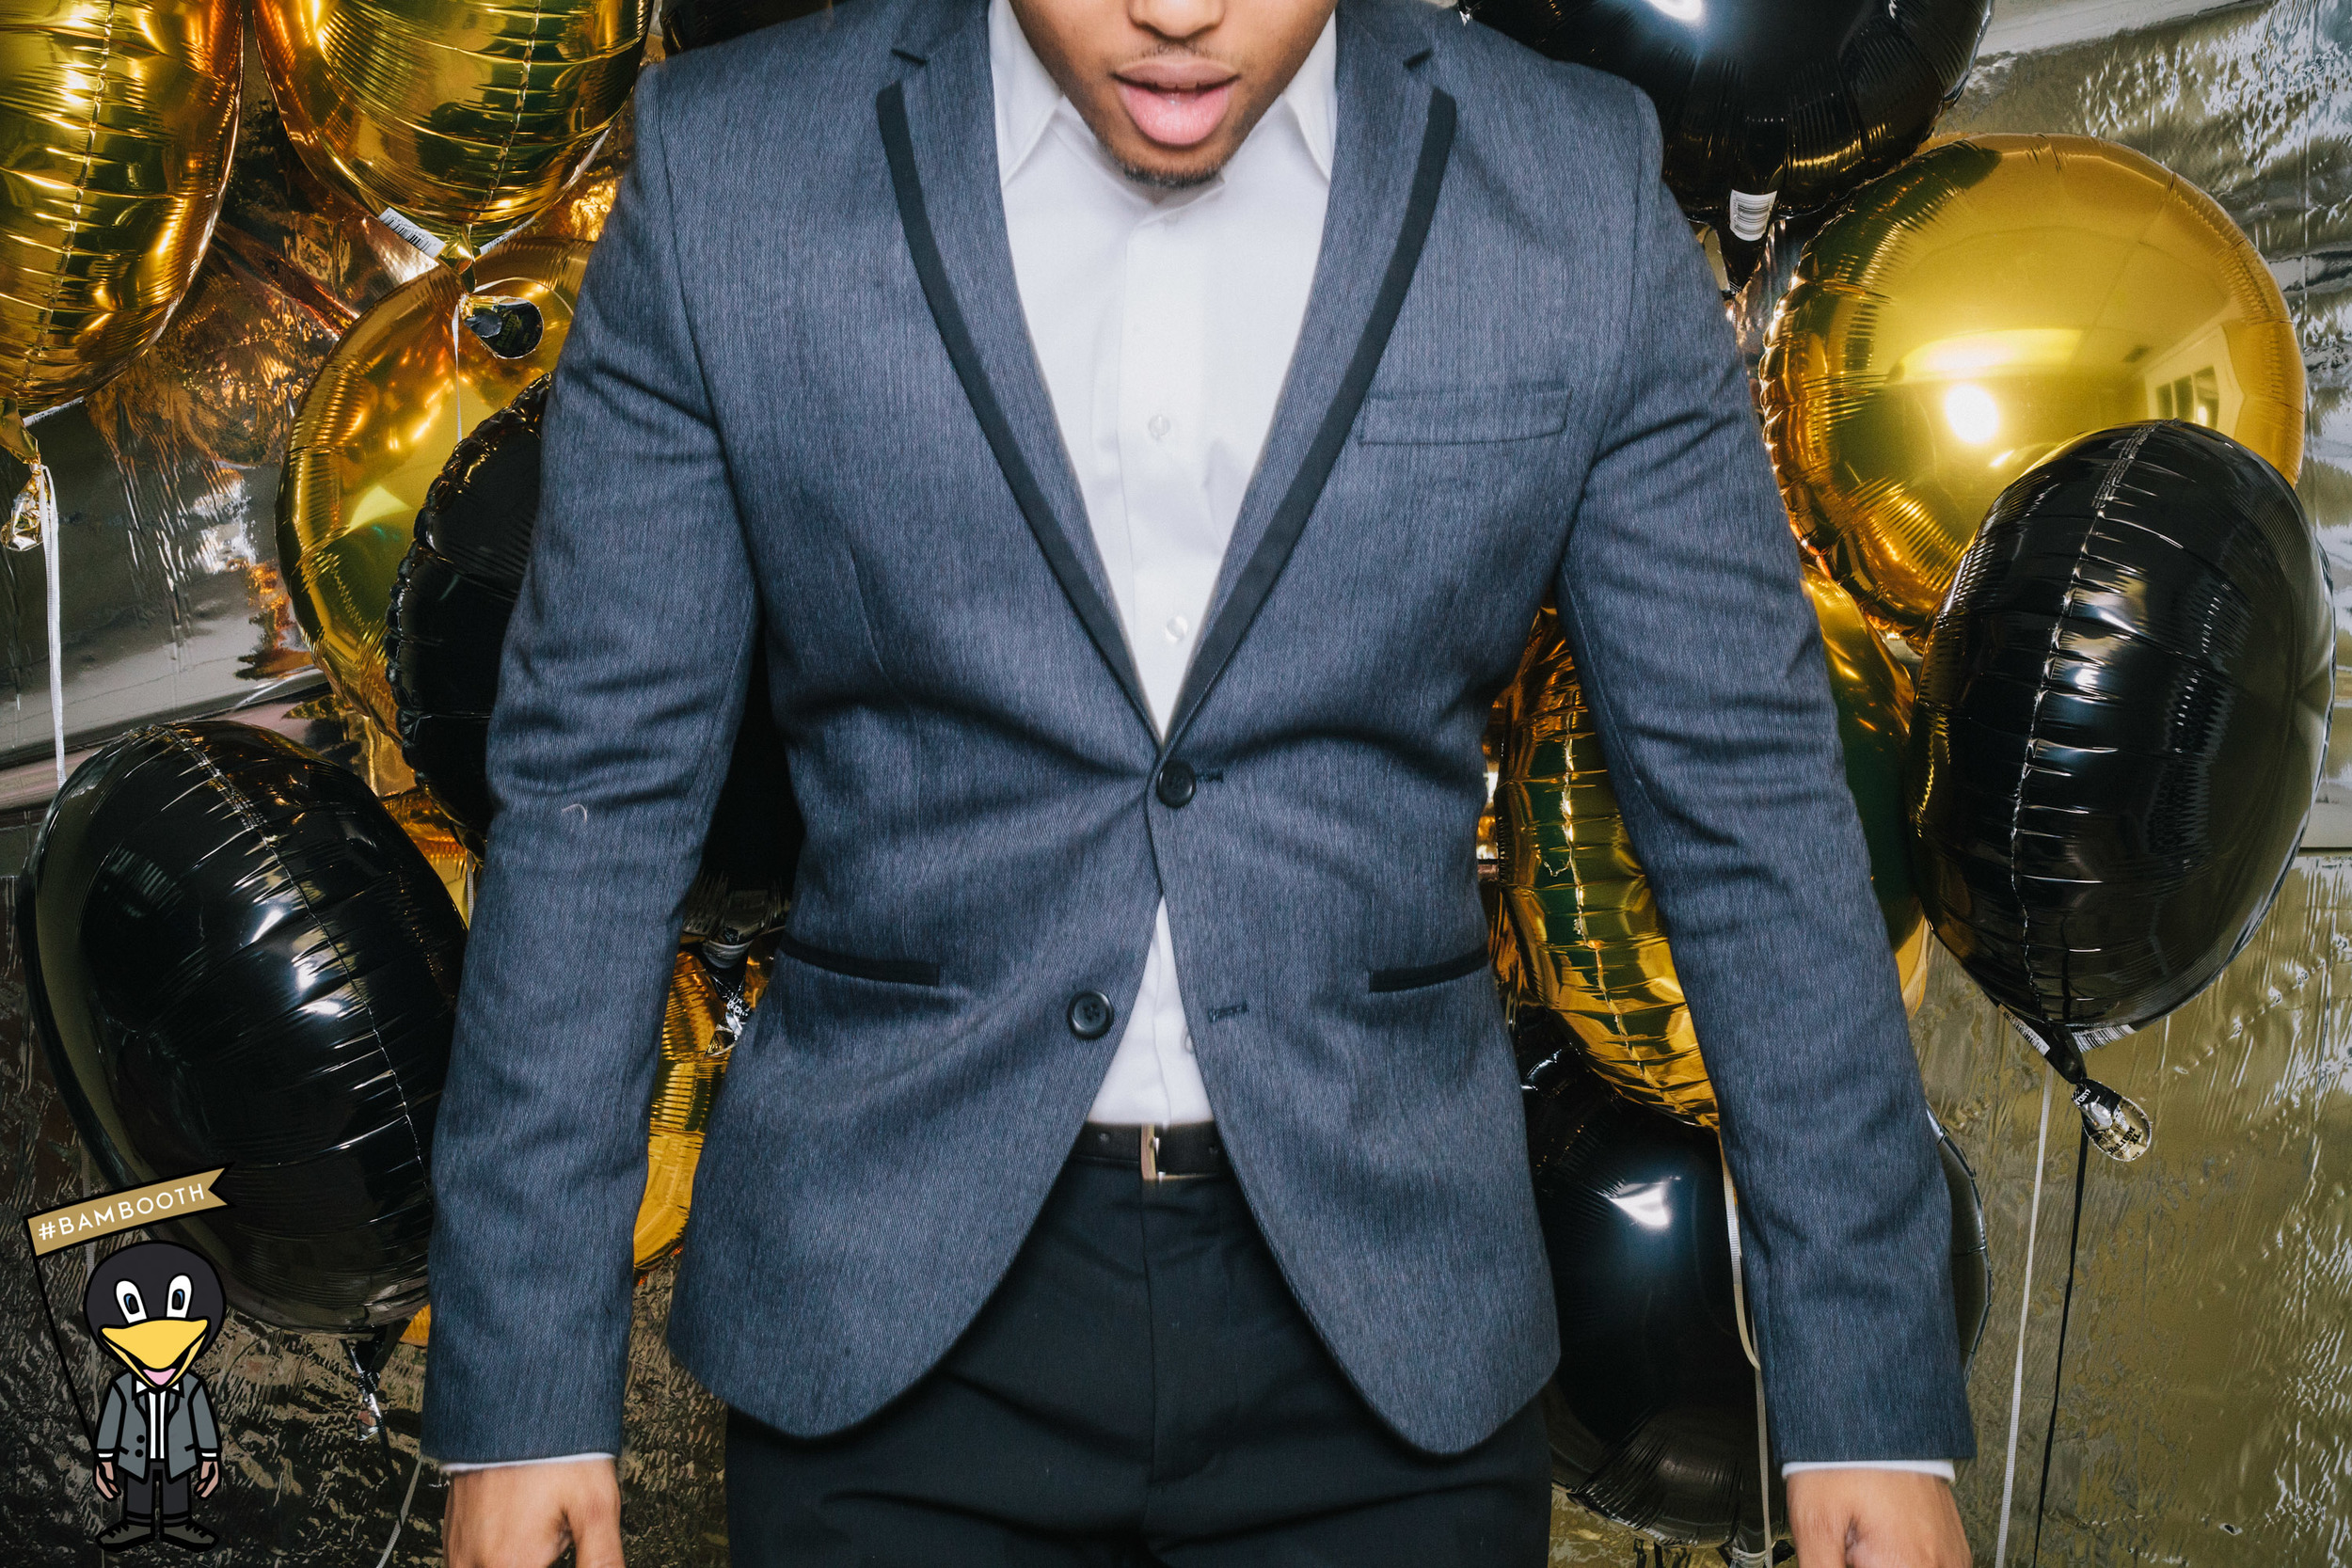 Michael-Rousseau-Photography-Toronto-Photo-Booth-Wedding-Corporate-#Bambooth-025.jpg